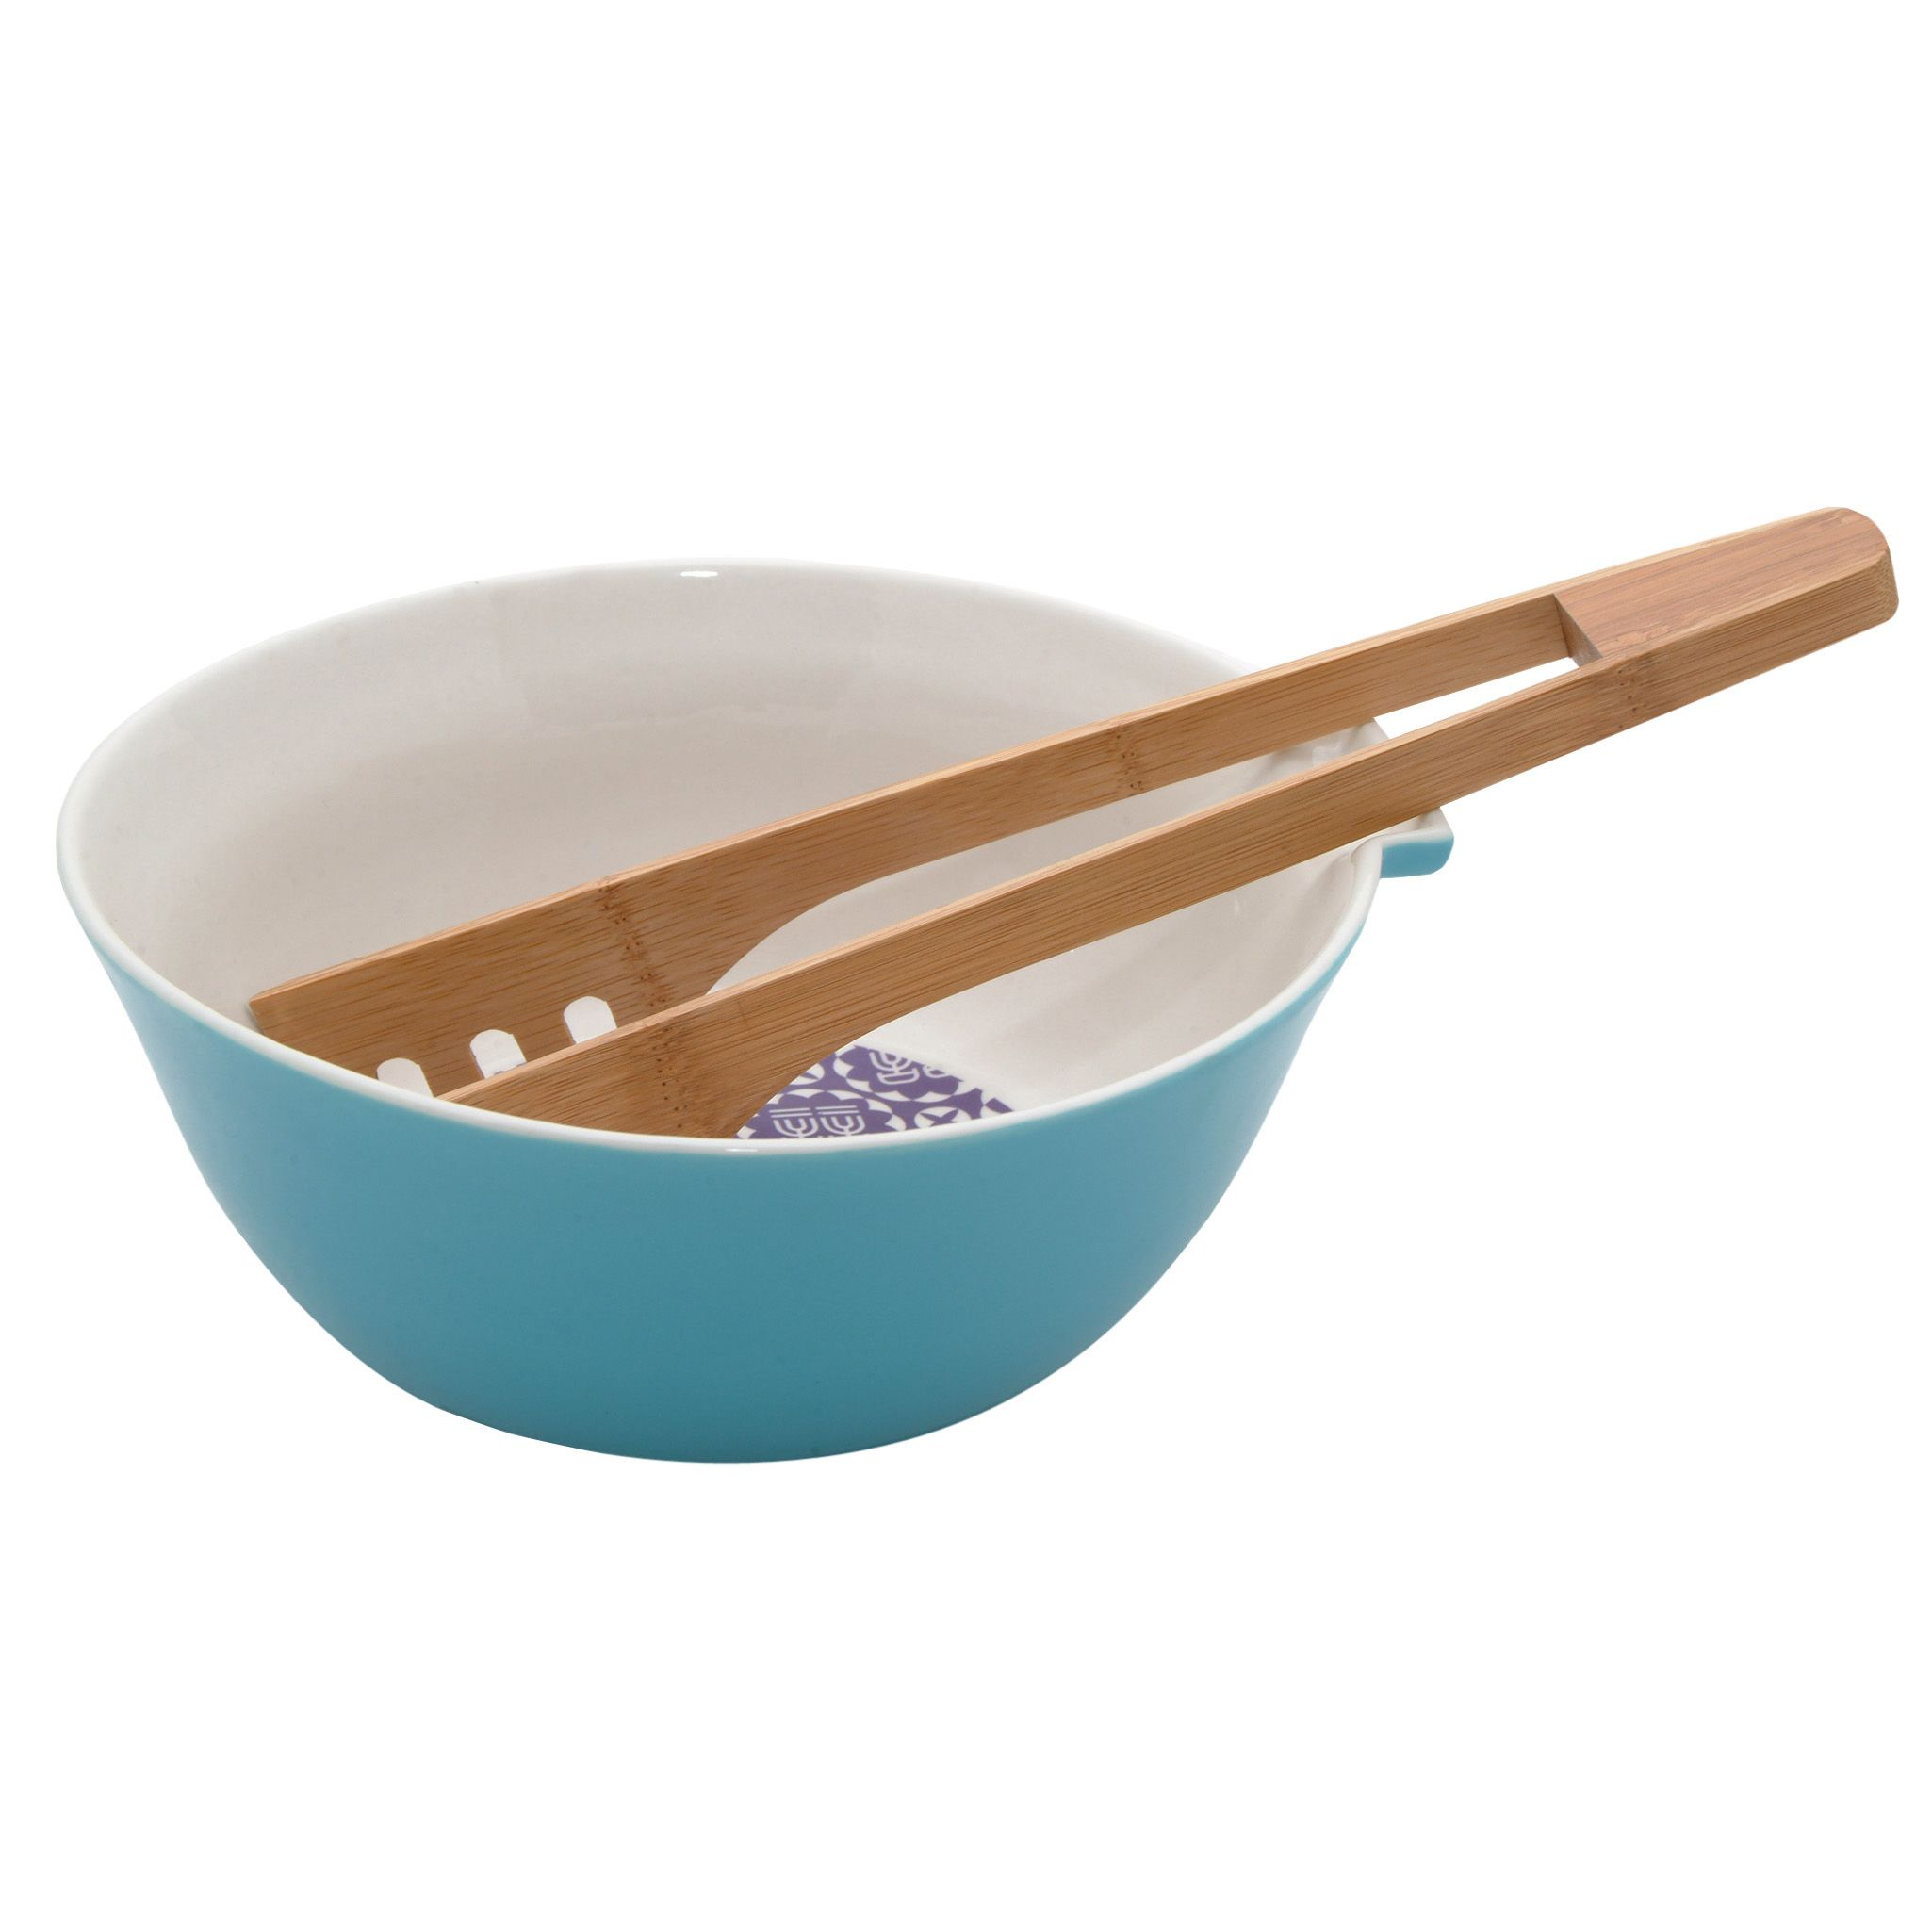 Serving Bowl & Bamboo Tongs